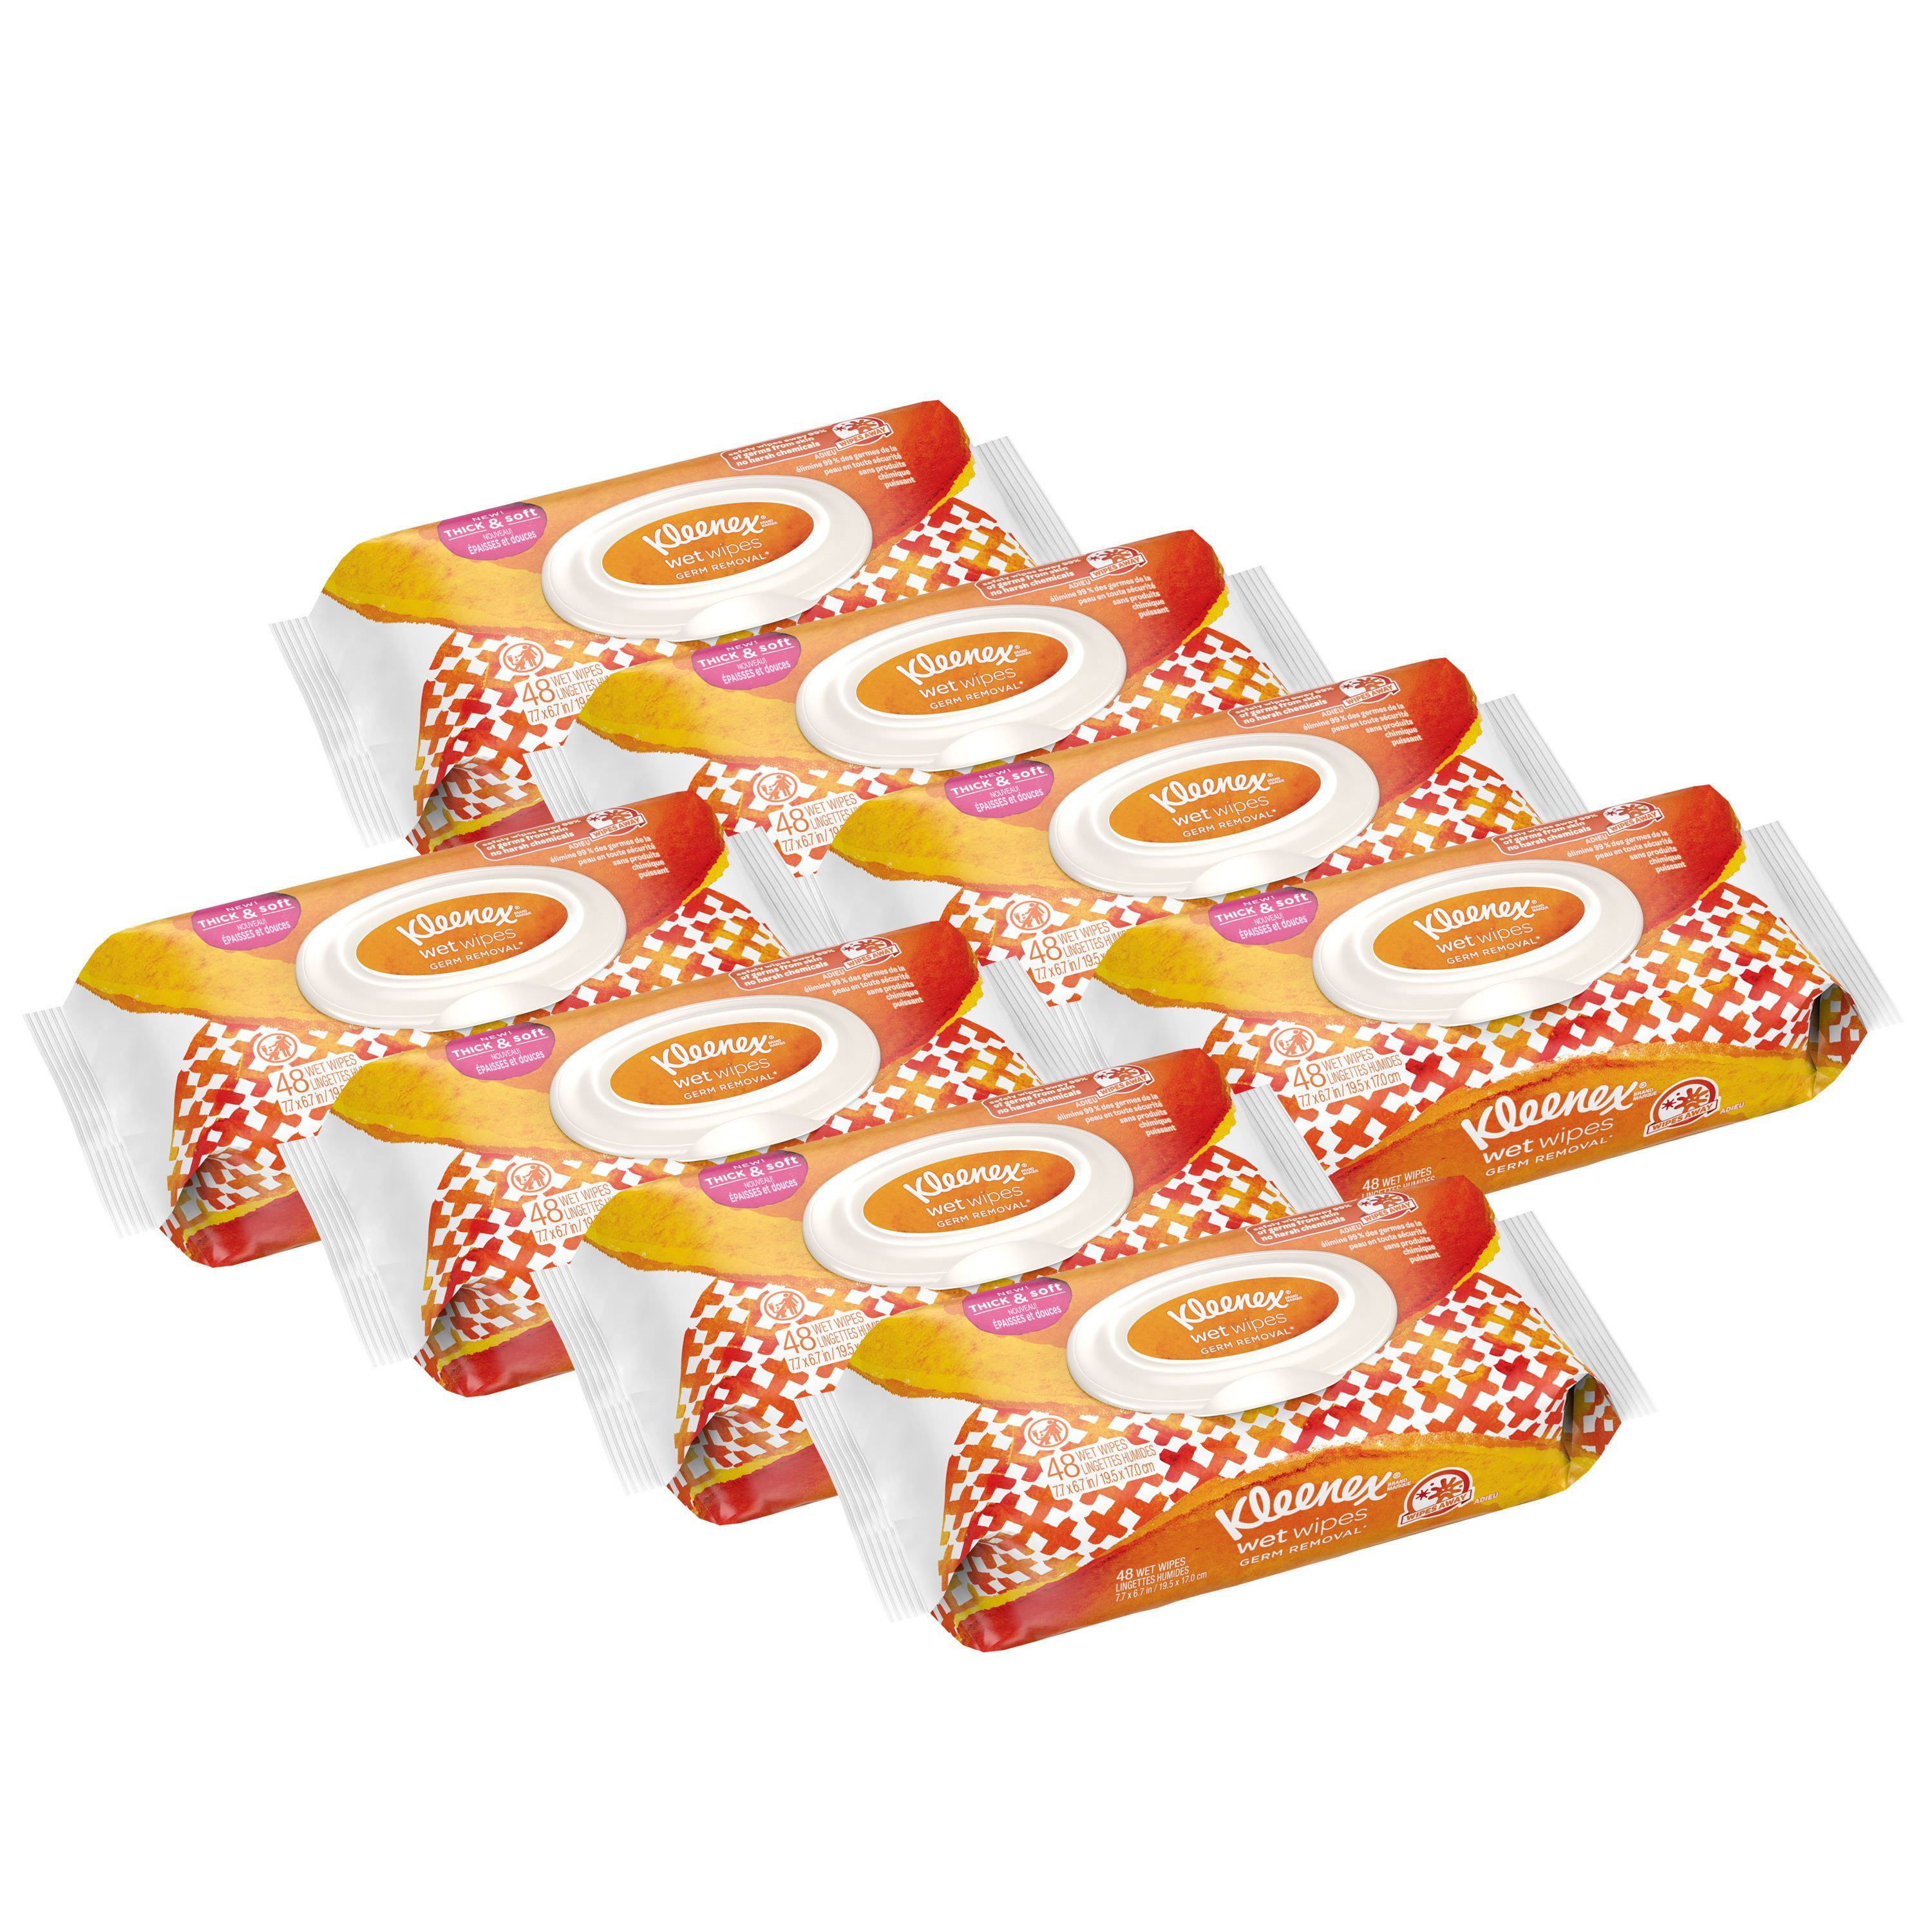 Kleenex Wet Wipes Germ Removal for Hands and Face, Flip-top Pack, 48 Wipes (8 Packs, 384 Total Wipes)